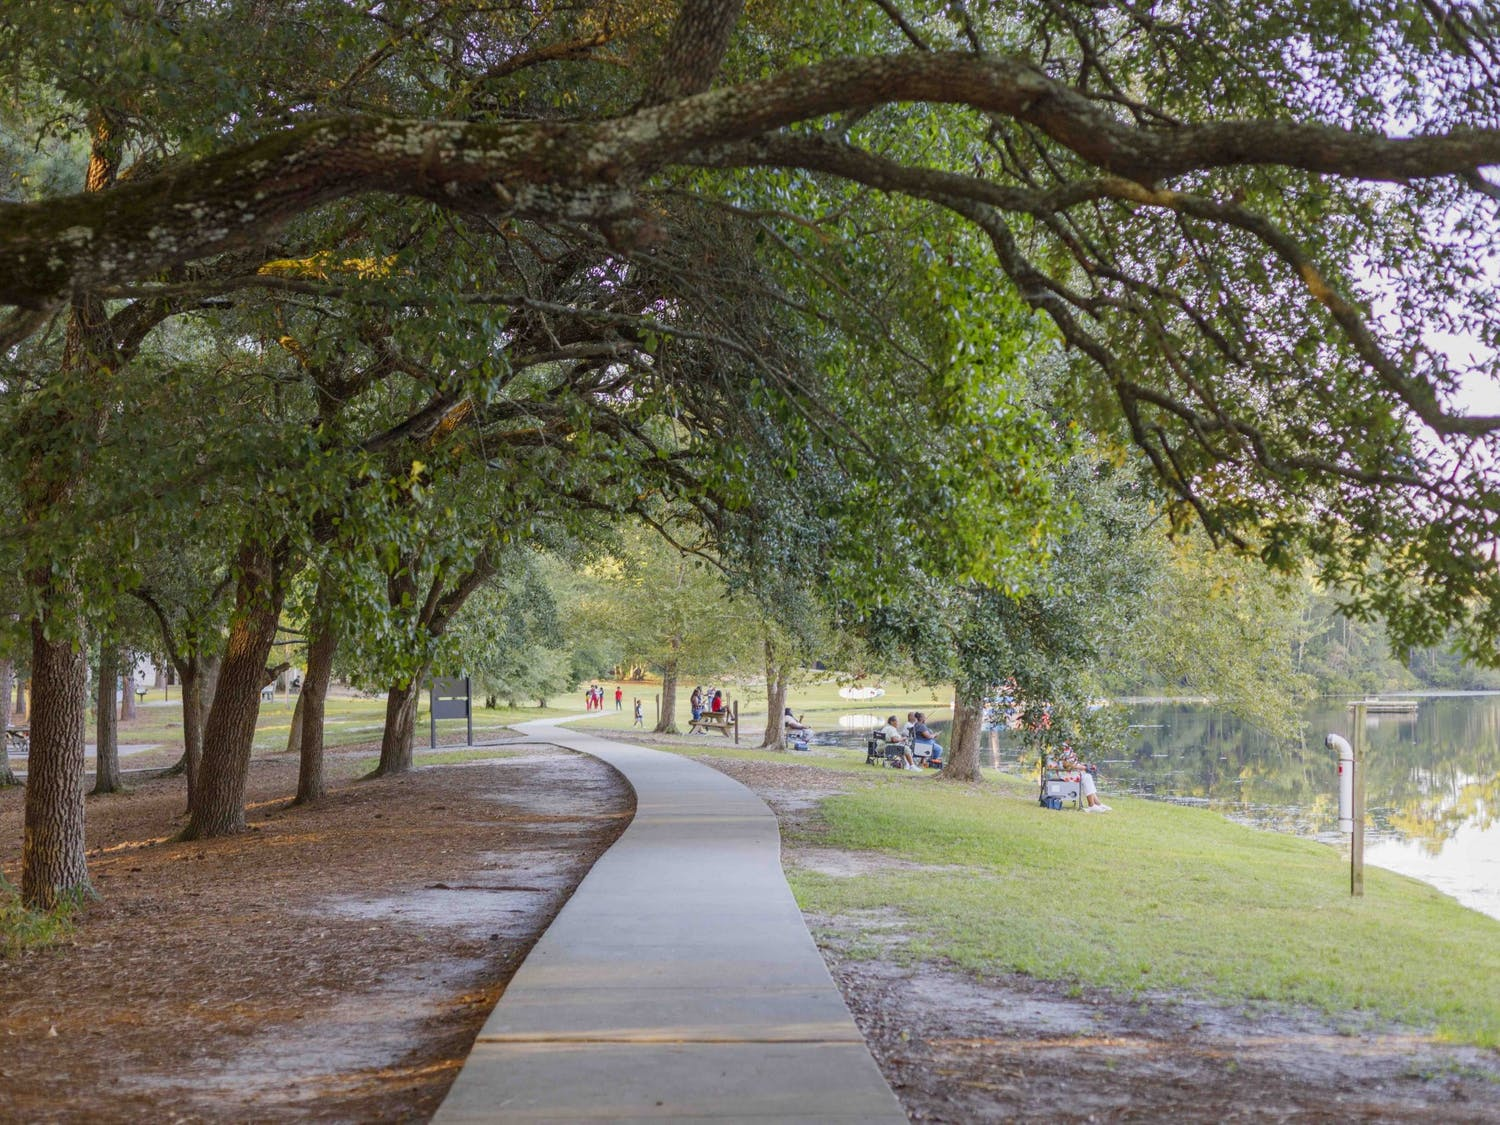 People sit, read, talk and enjoy the South Carolina weather along a paved path through Sesquicentennial State park.